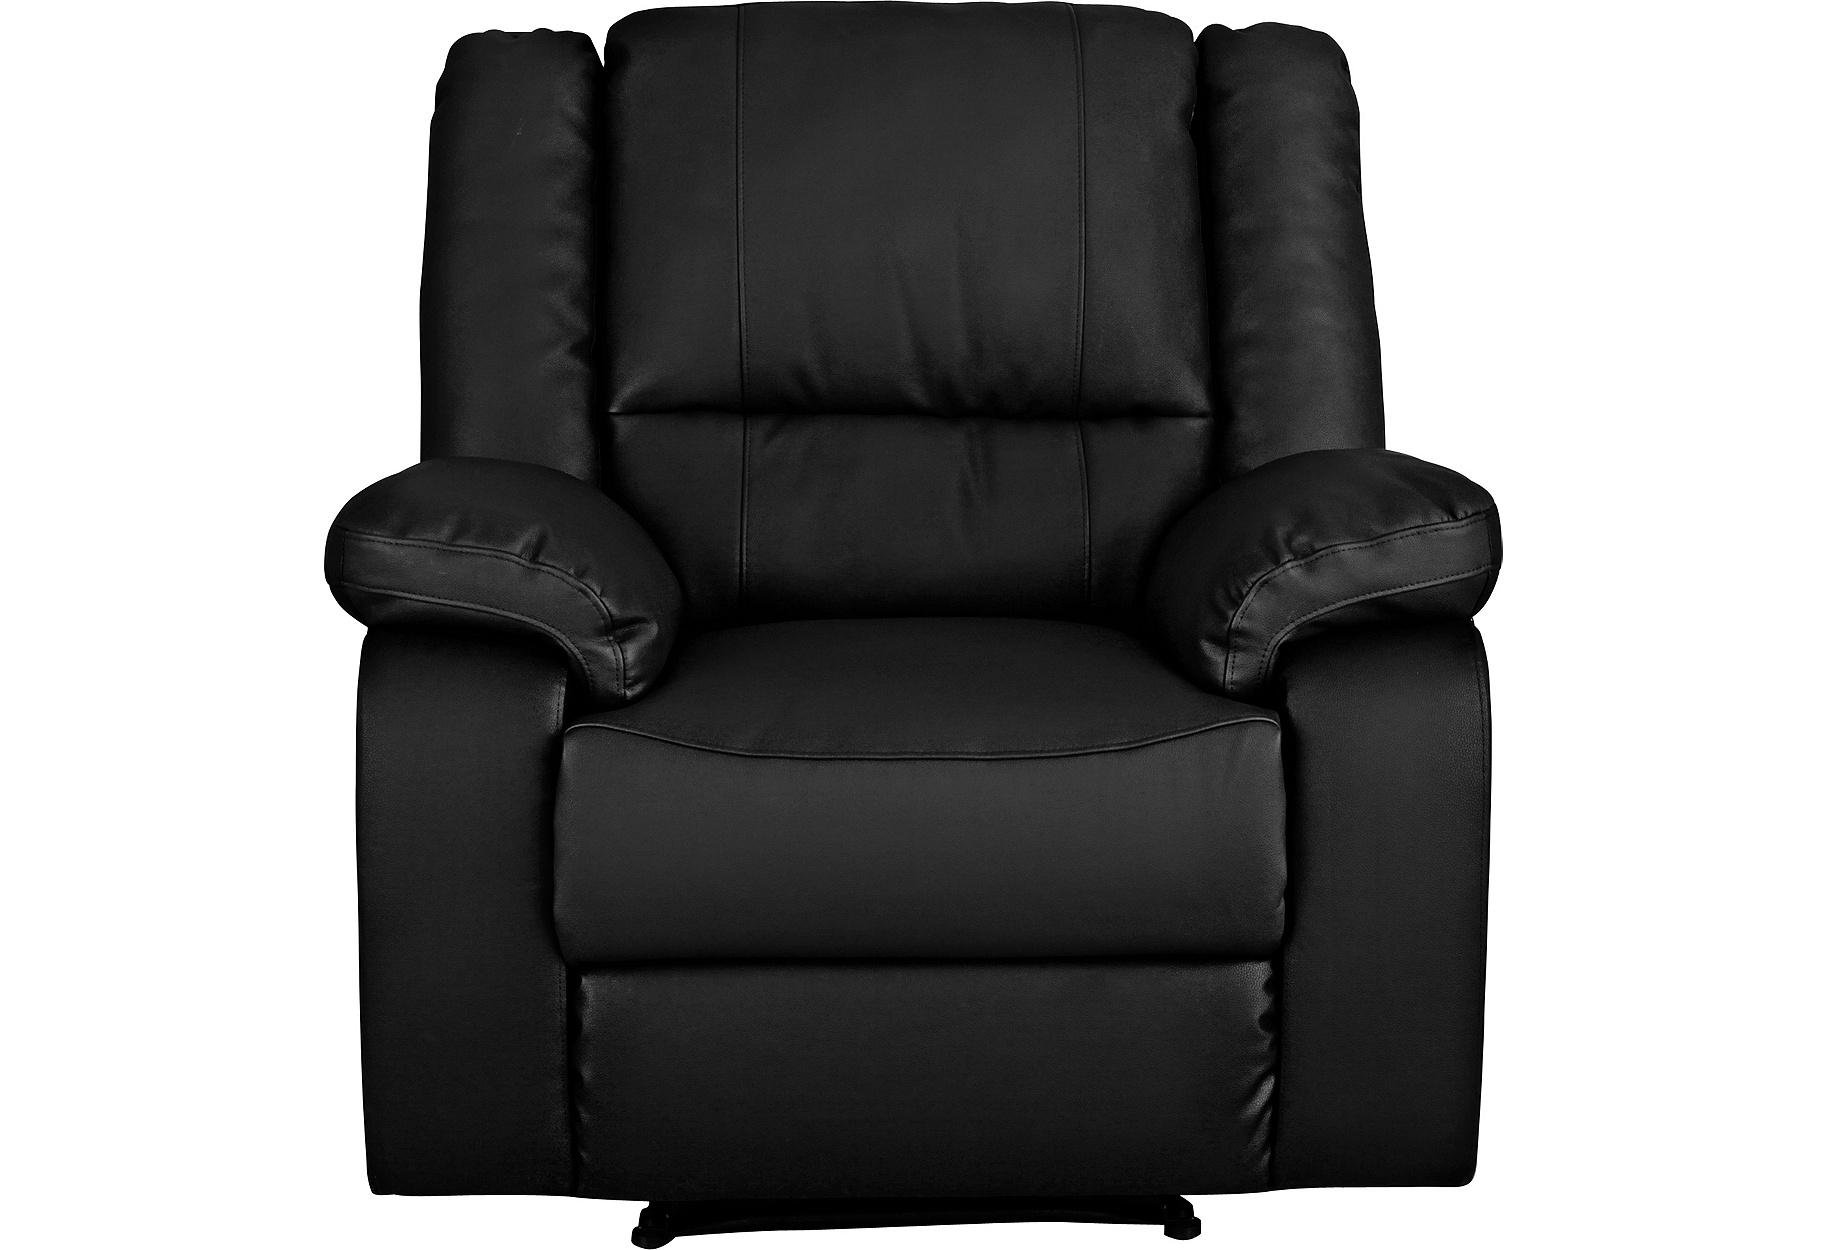 HOME Bruno Leather Effect Manual Recliner Chair - Black